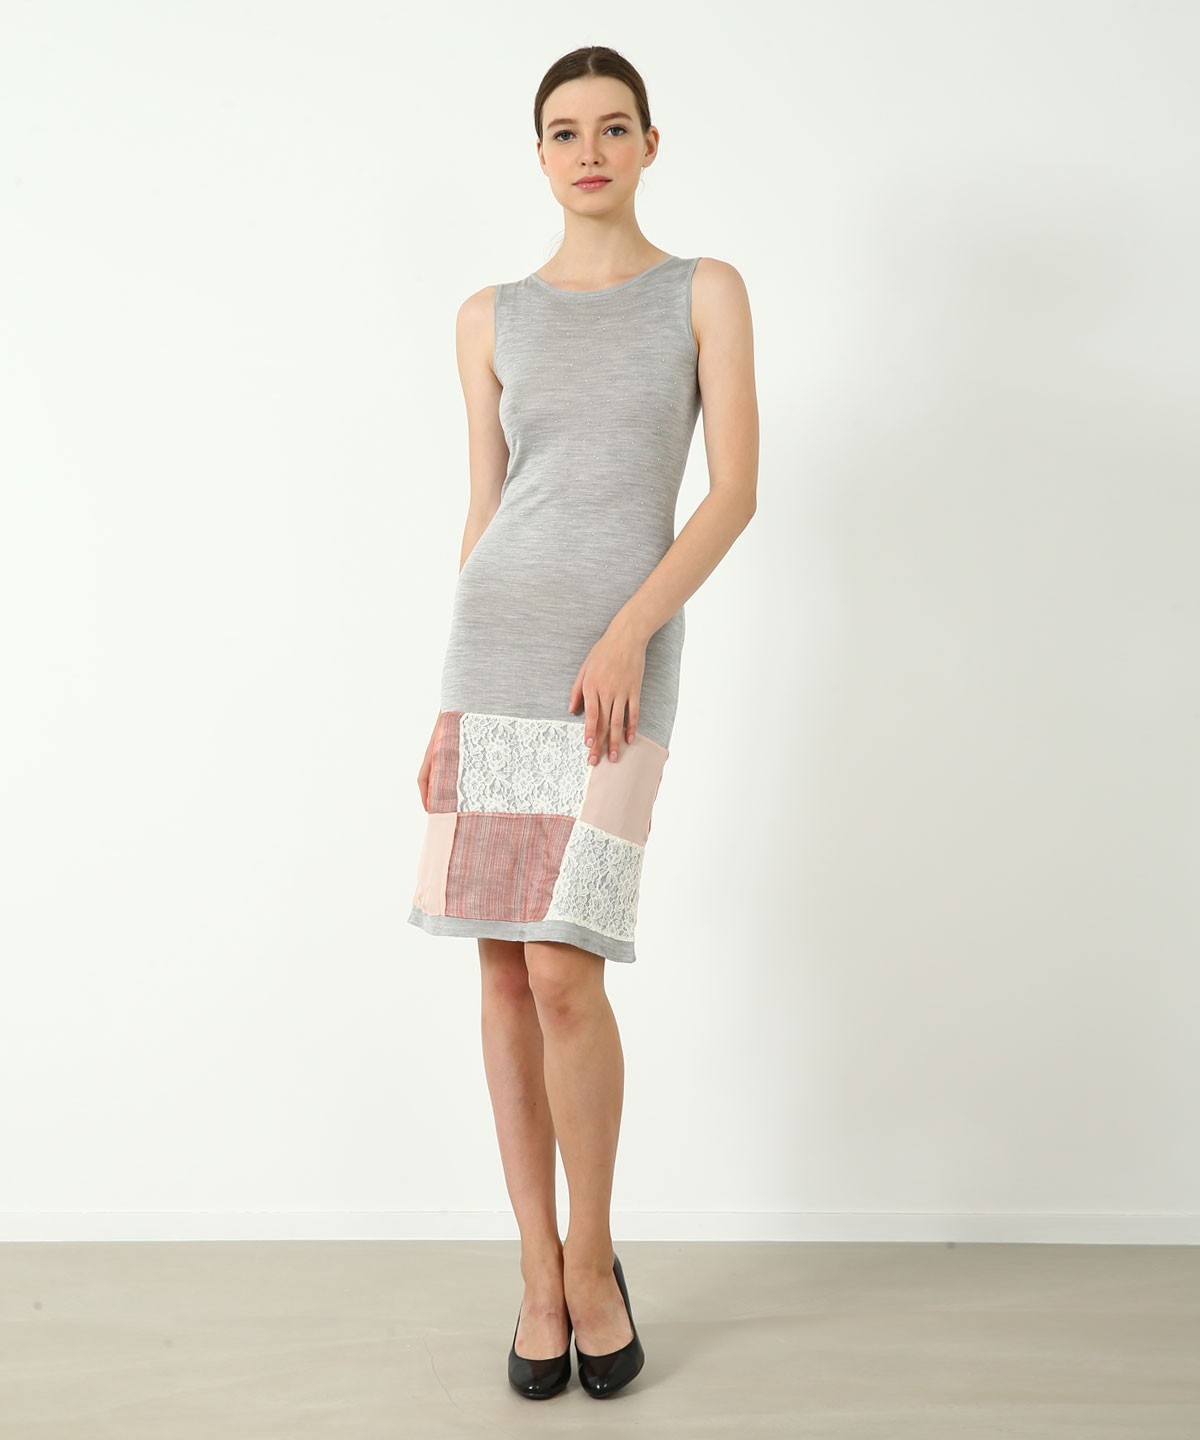 Juliette Luxe Silk Dress - Knitted